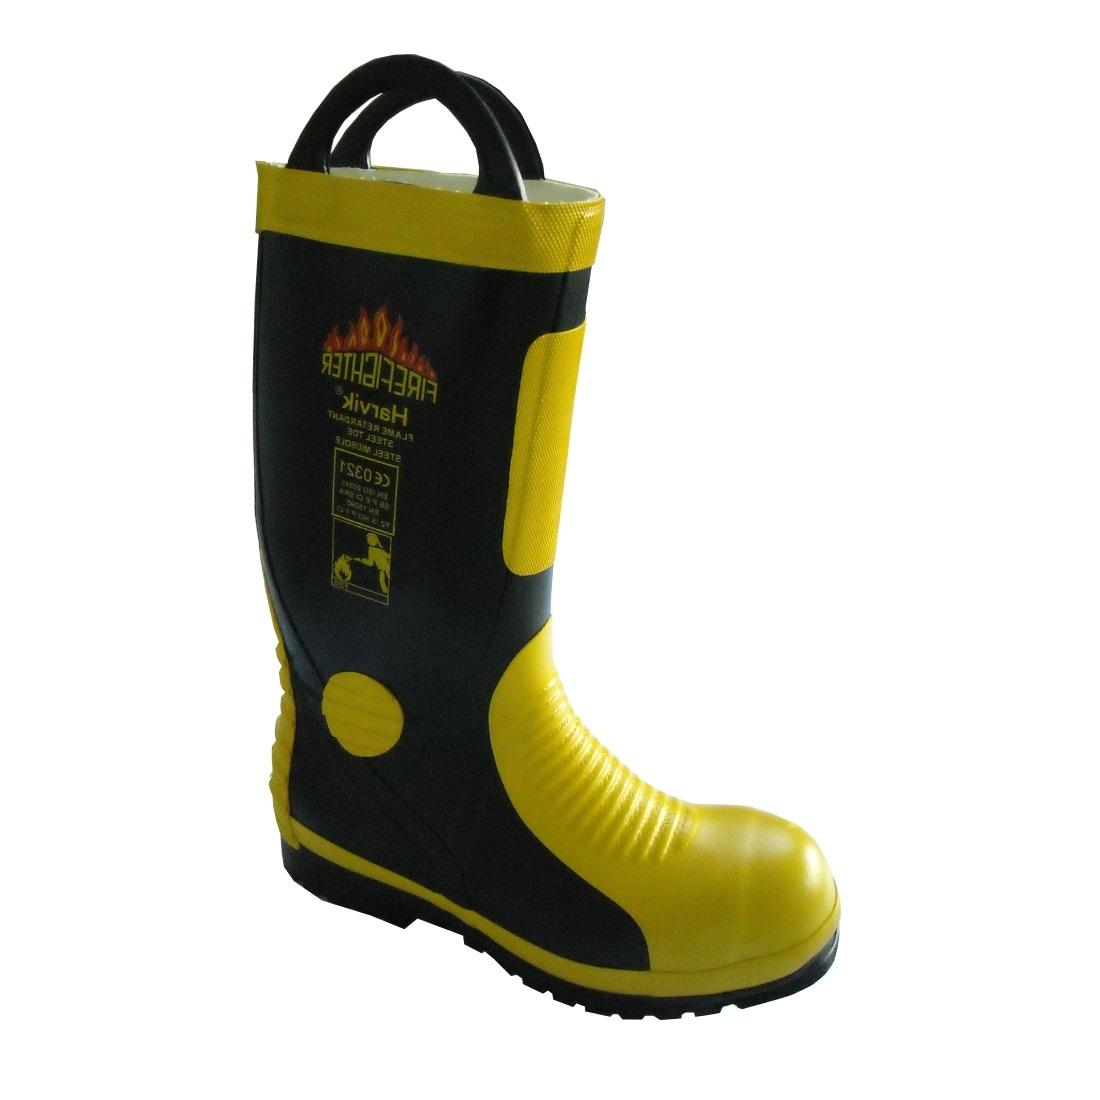 e01c1cca4a0 HARVIK Fire Fighting Boots - Safetyware Sdn Bhd